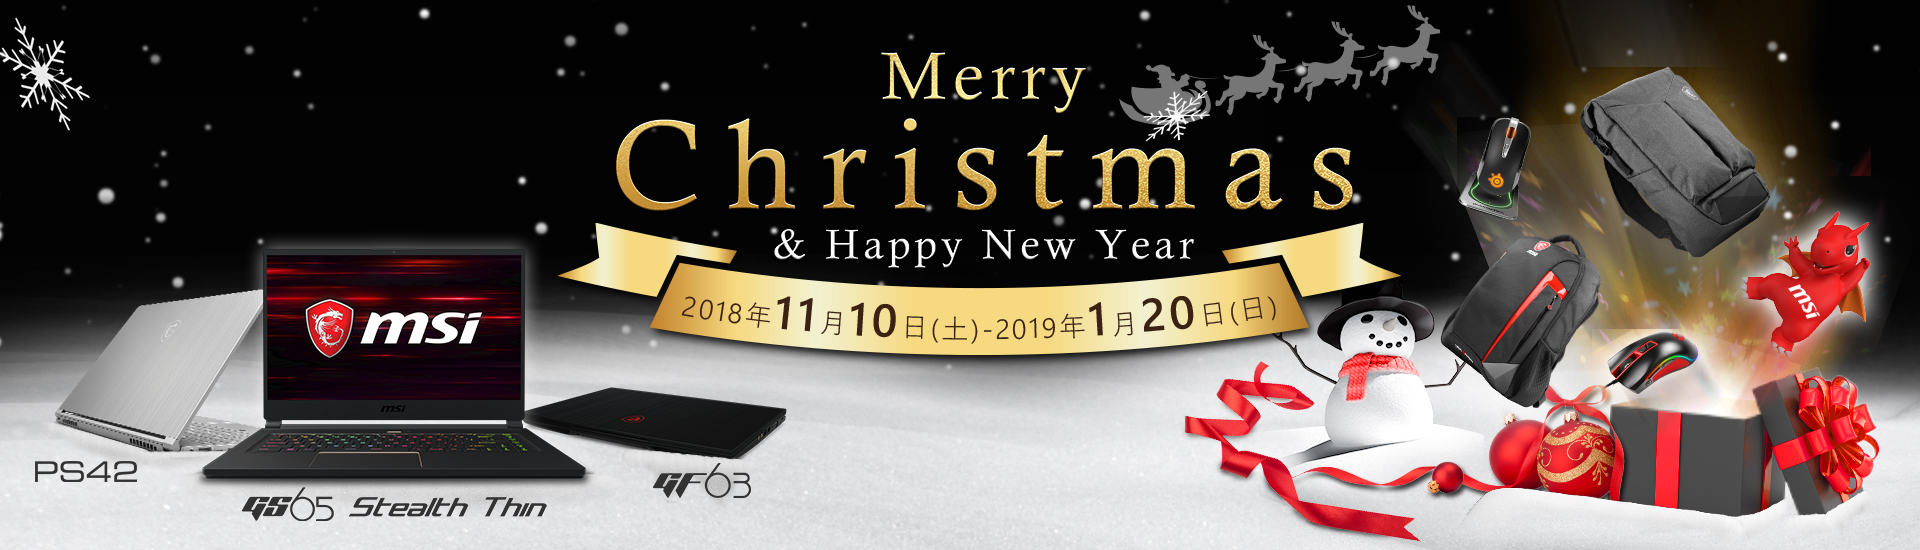 MSI Merry Xmas & Happy New Year!